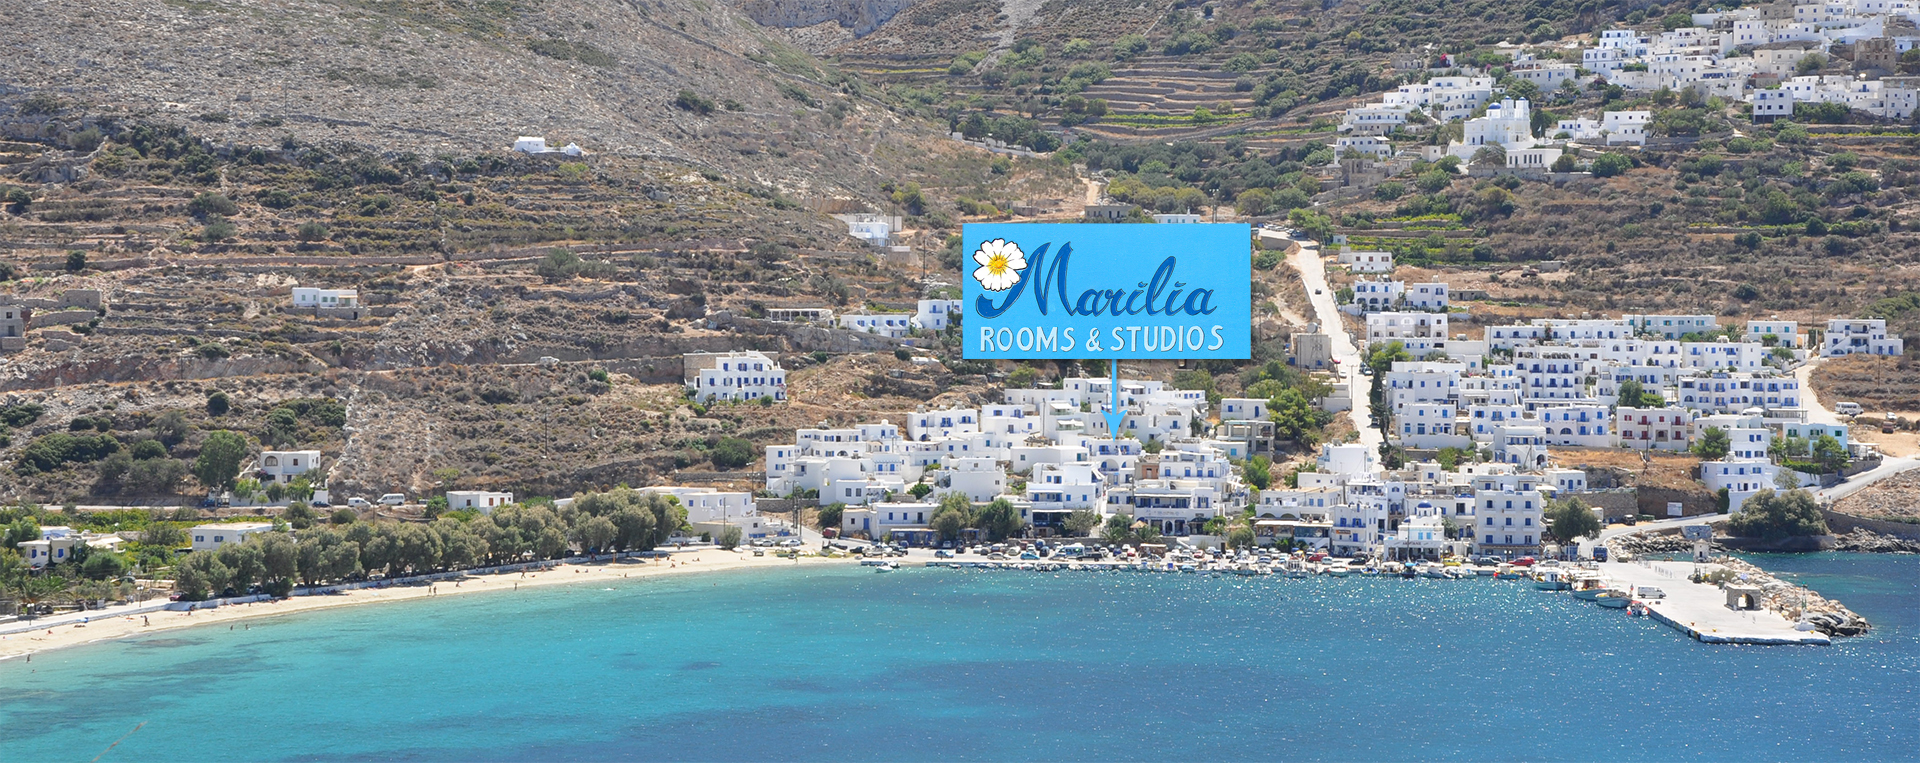 Location-Marilia-Studios-Aegiali-Amorgos-Greece